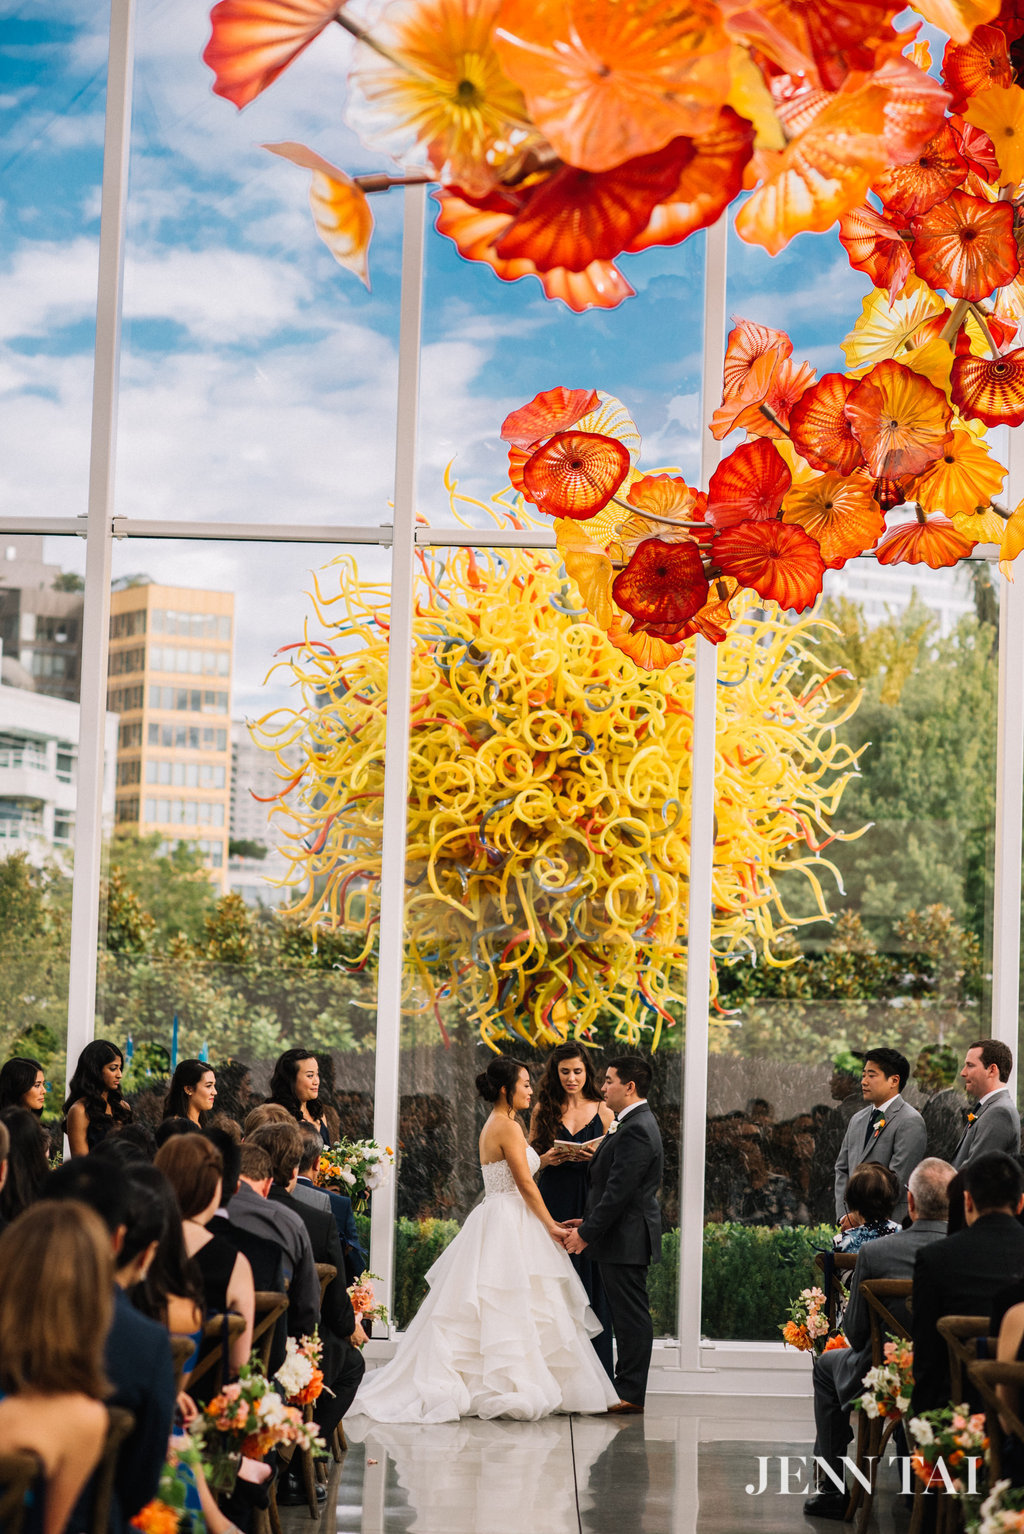 Chihuly Wedding Ceremony | Seattle Wedding Planner | Chinese Wedding Planner